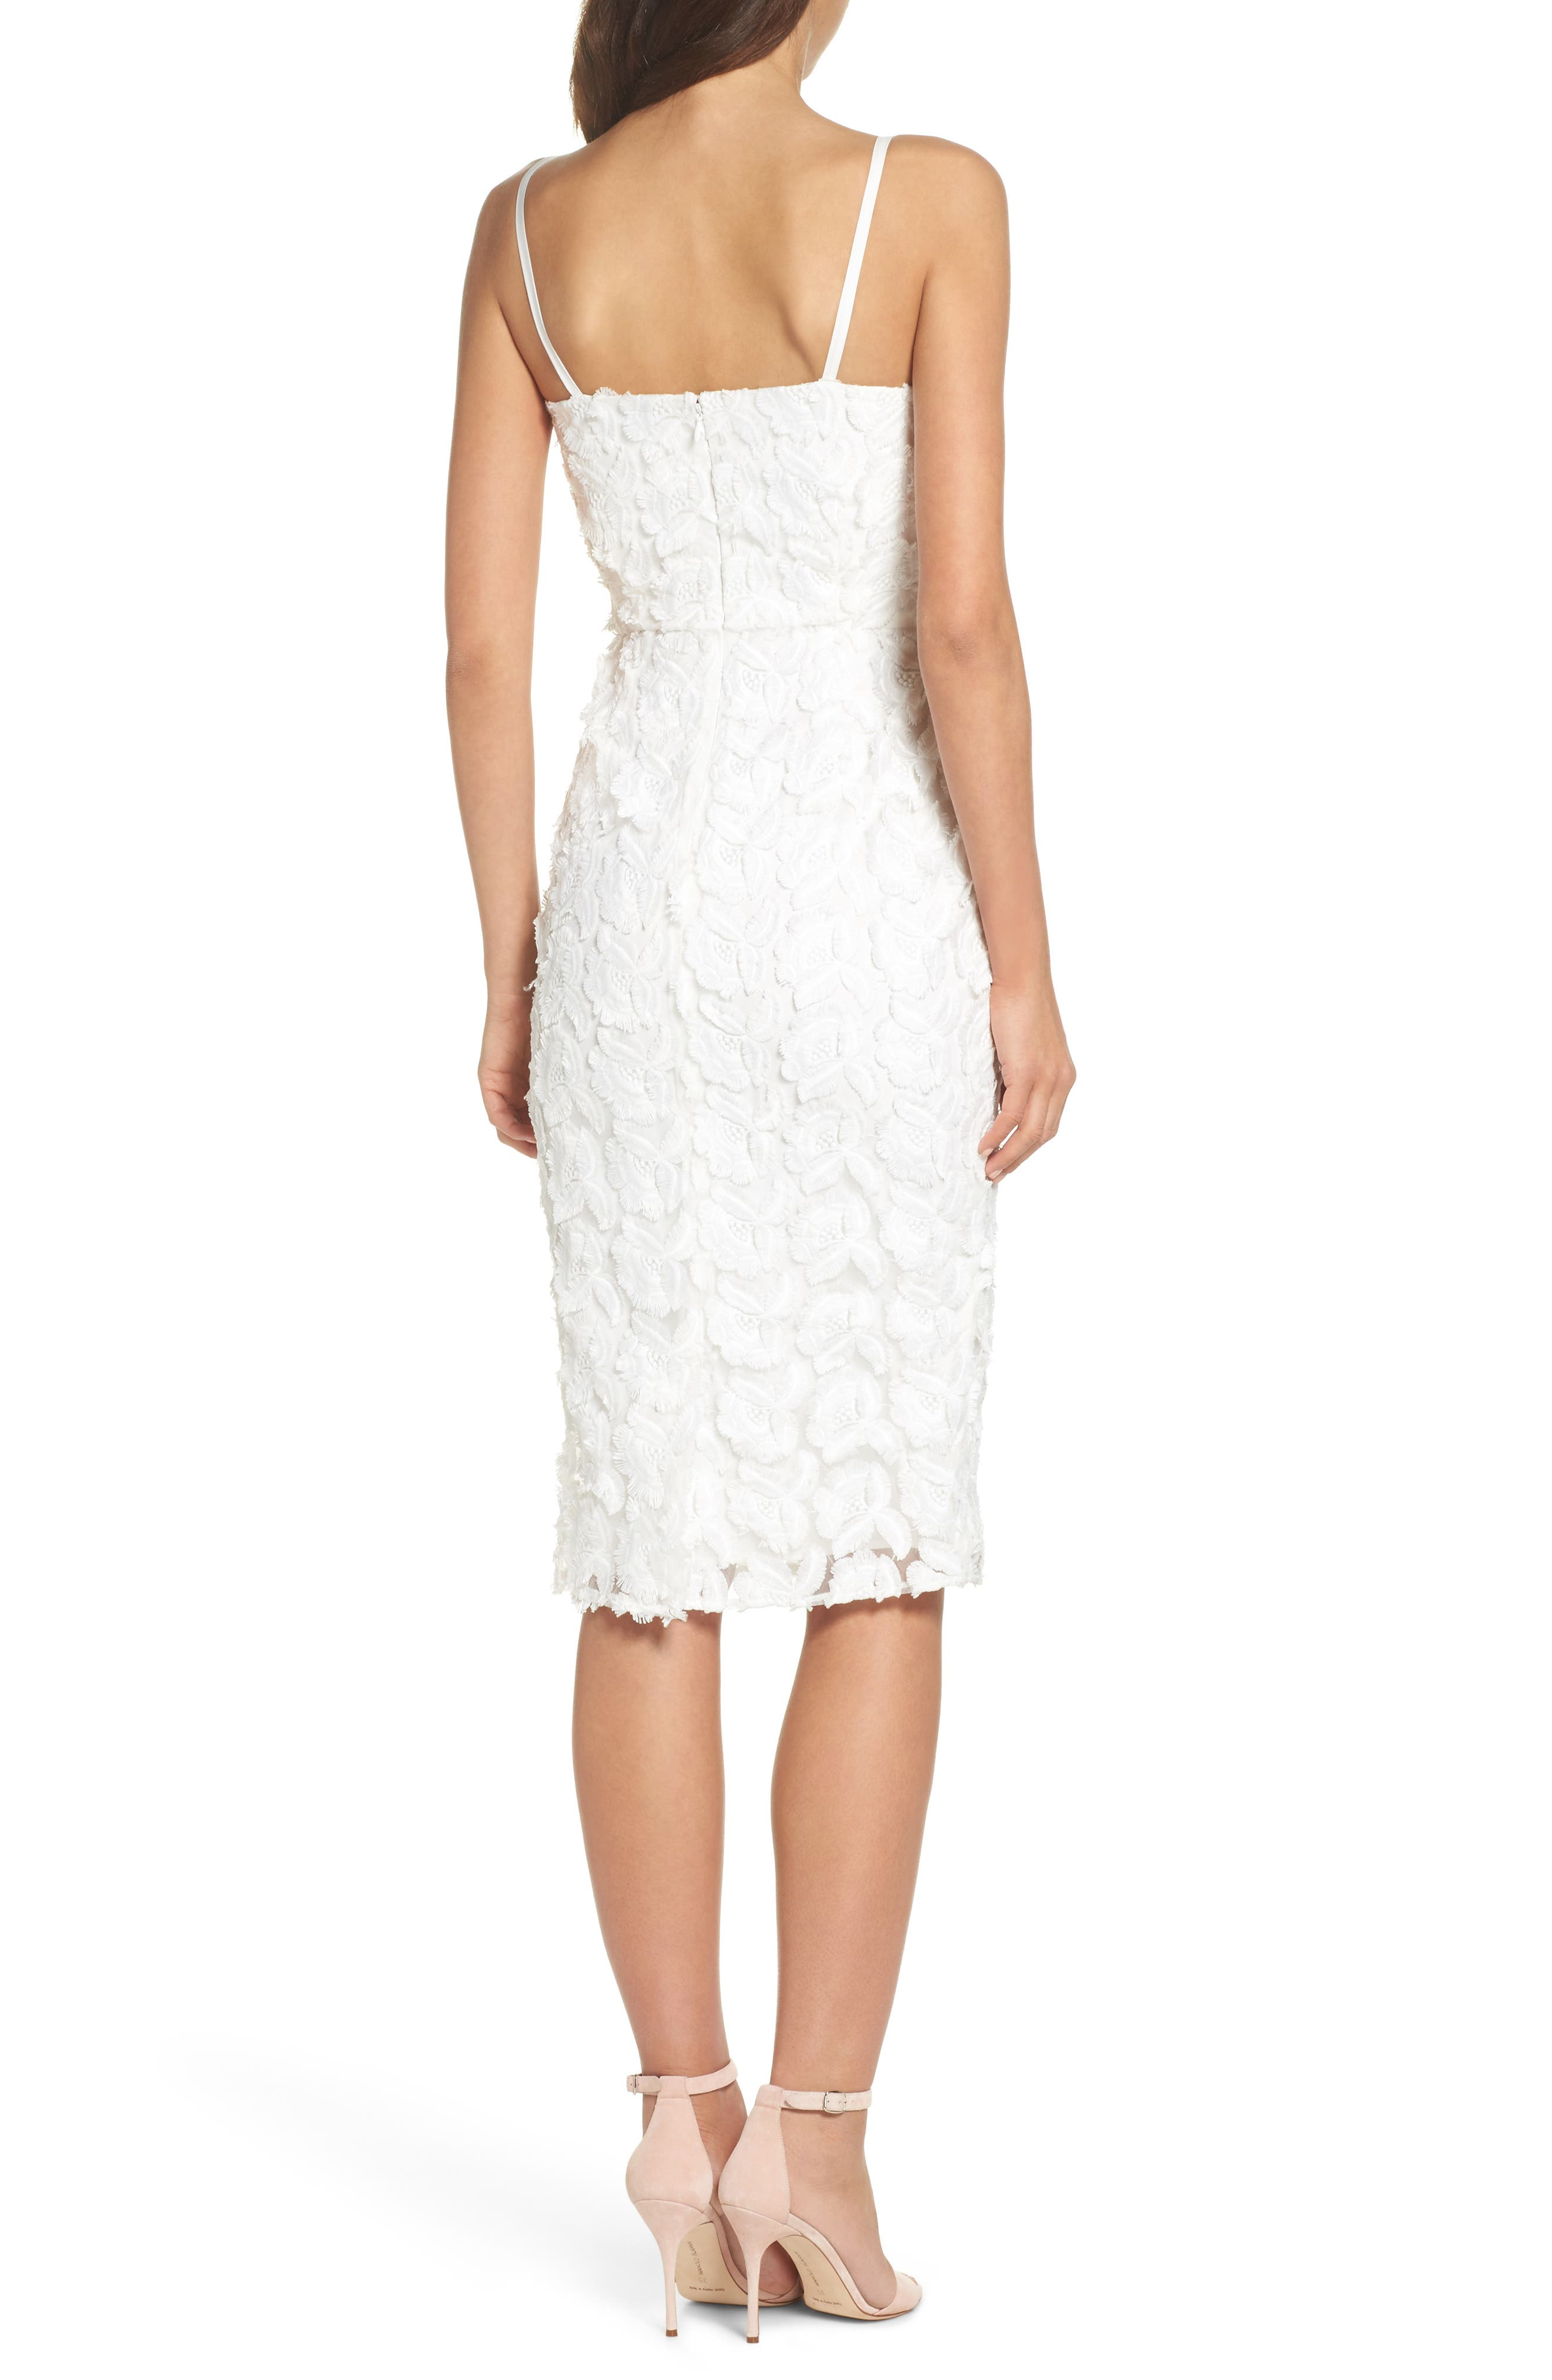 Floral Mirage Embroidered Lace Dress,                             Alternate thumbnail 2, color,                             Gardenia